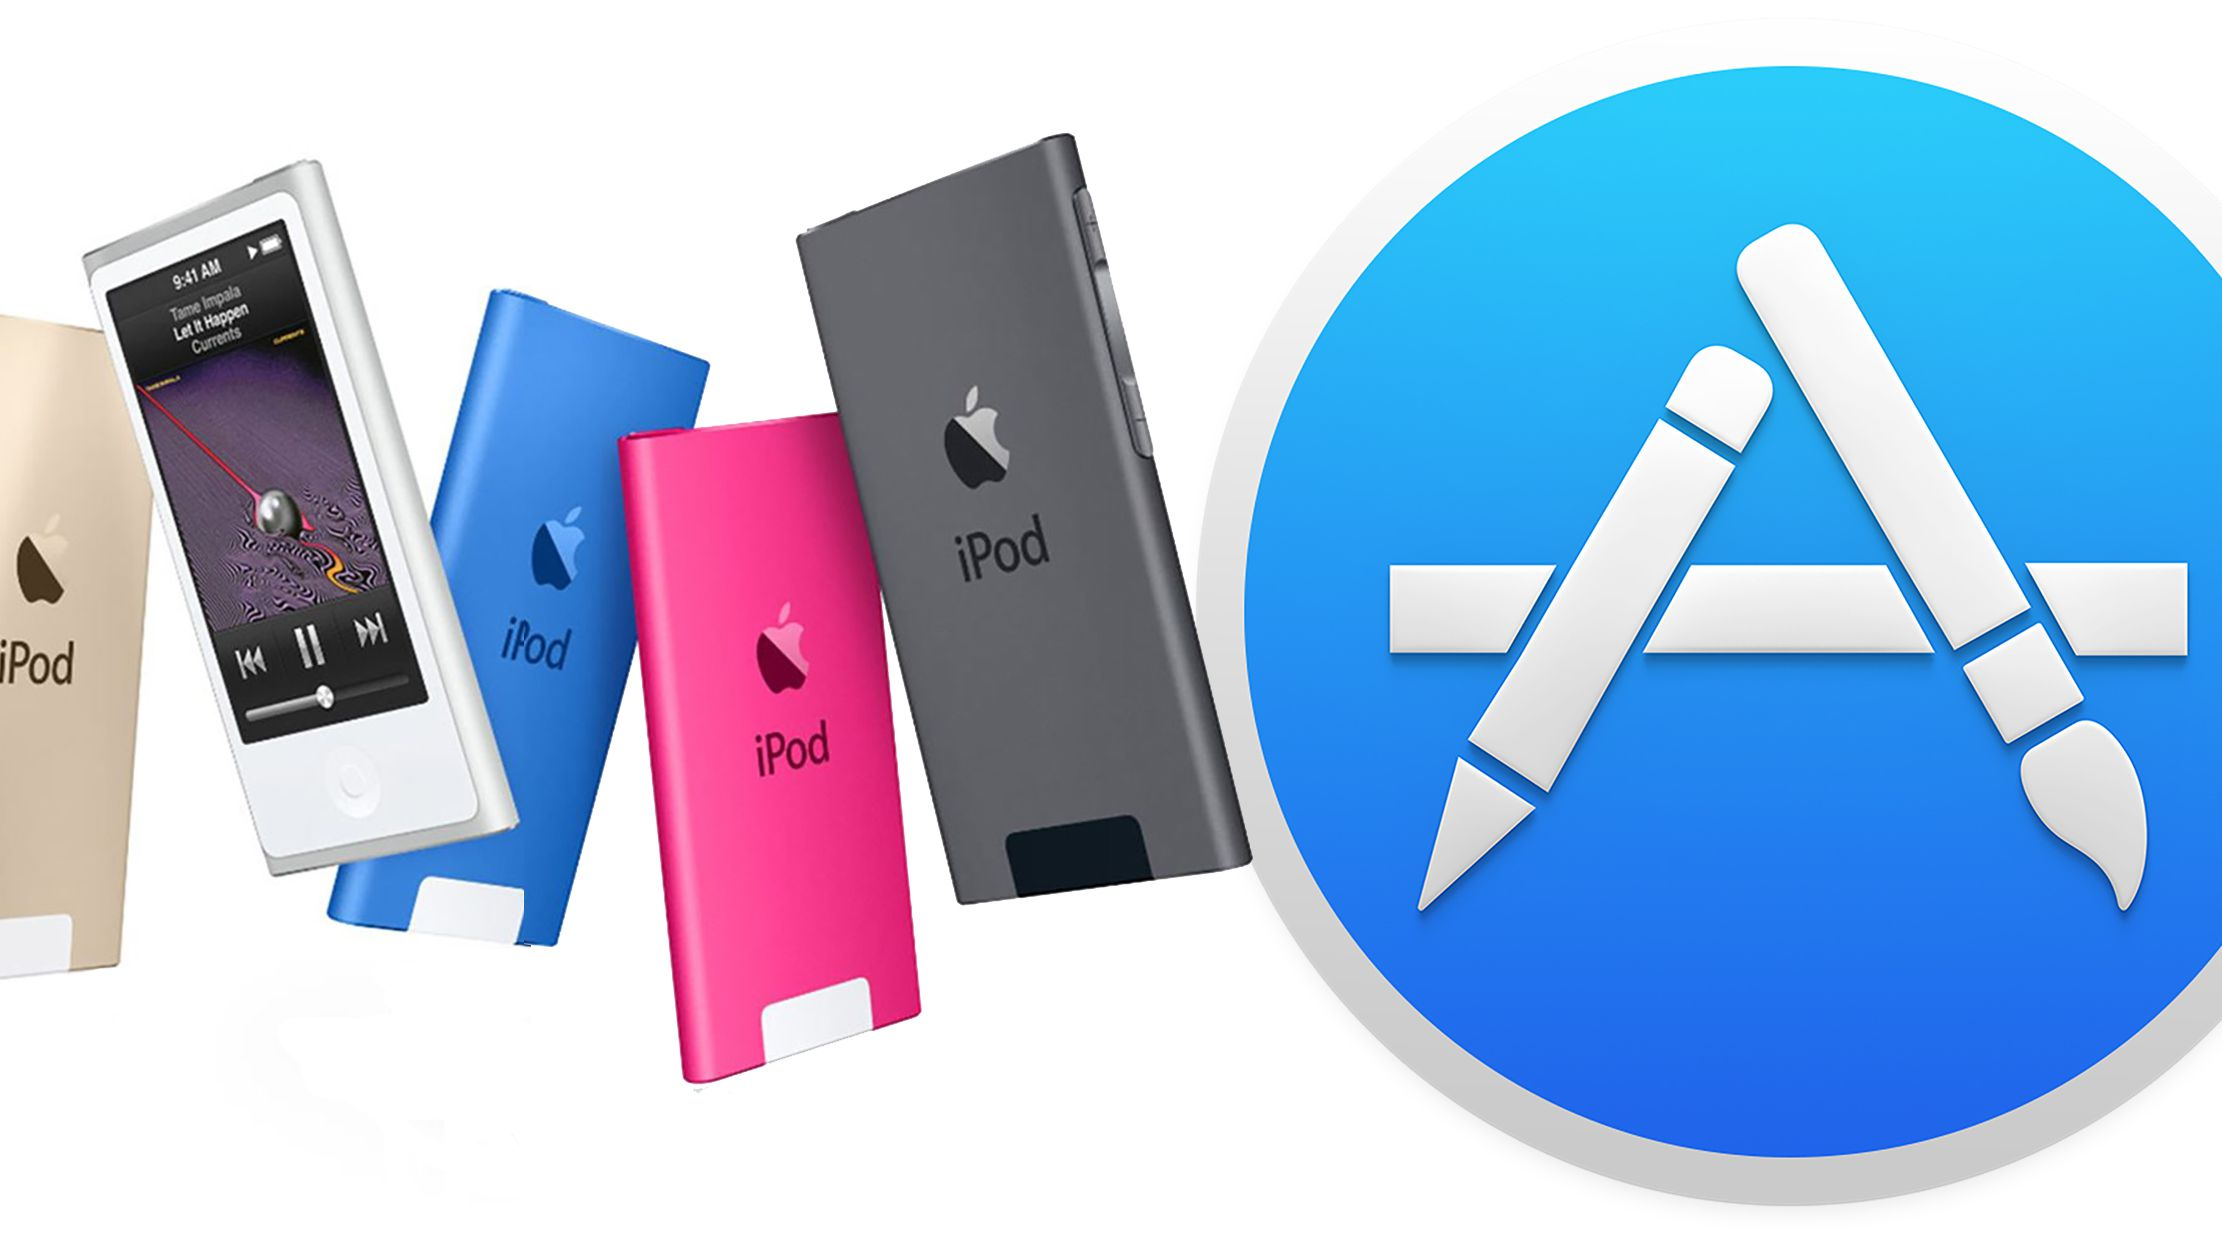 Can You Install Apps On The Ipod Nano